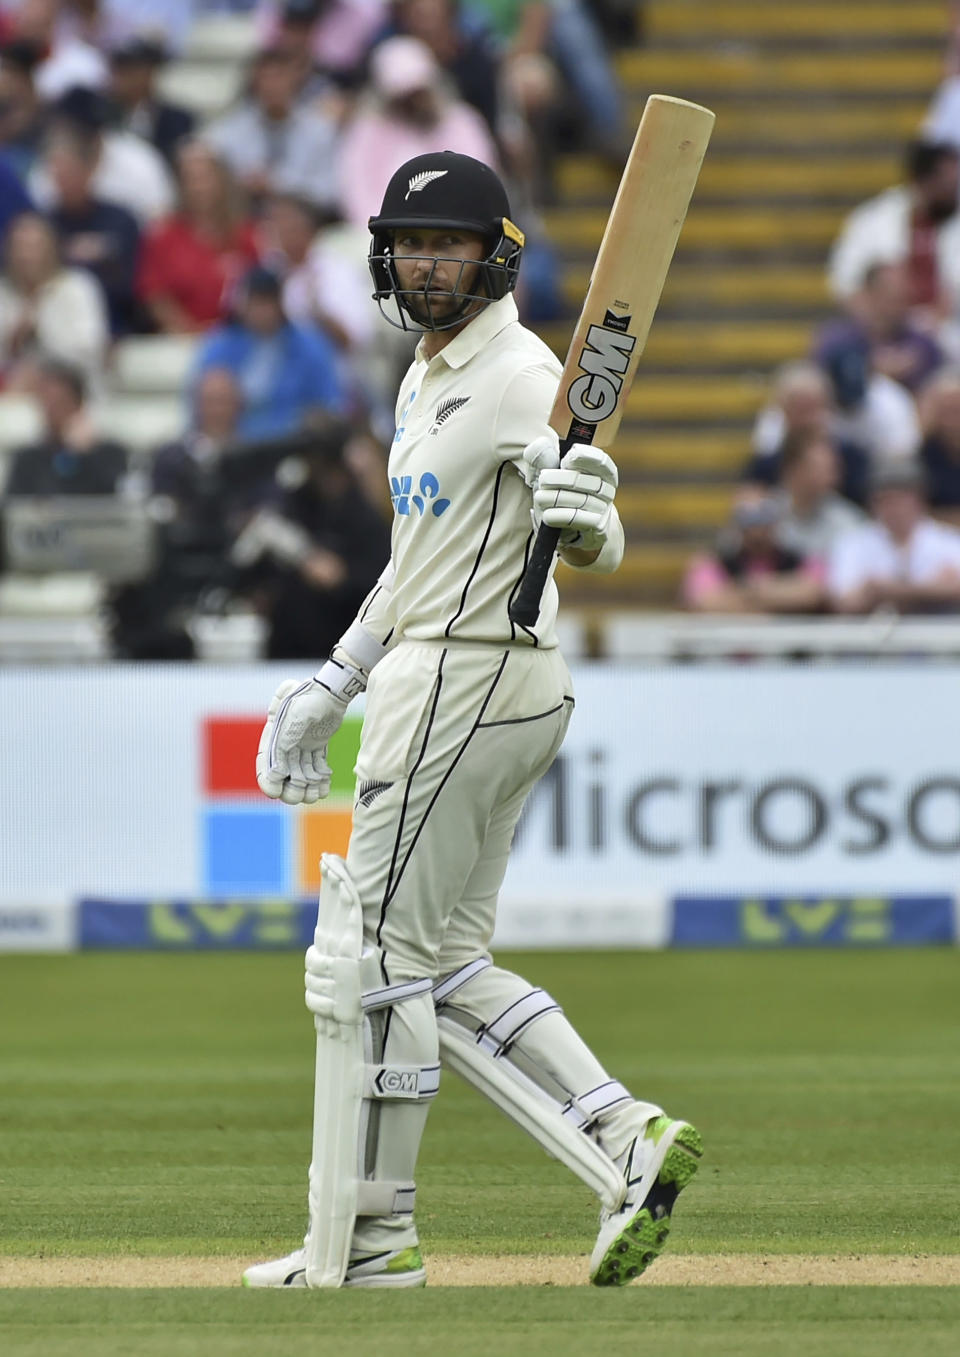 New Zealand's Devon Conway raises his bat to celebrate scoring fifty runs during the second day of the second cricket test match between England and New Zealand at Edgbaston in Birmingham, England, Friday, June 11, 2021. (AP Photo/Rui Vieira)